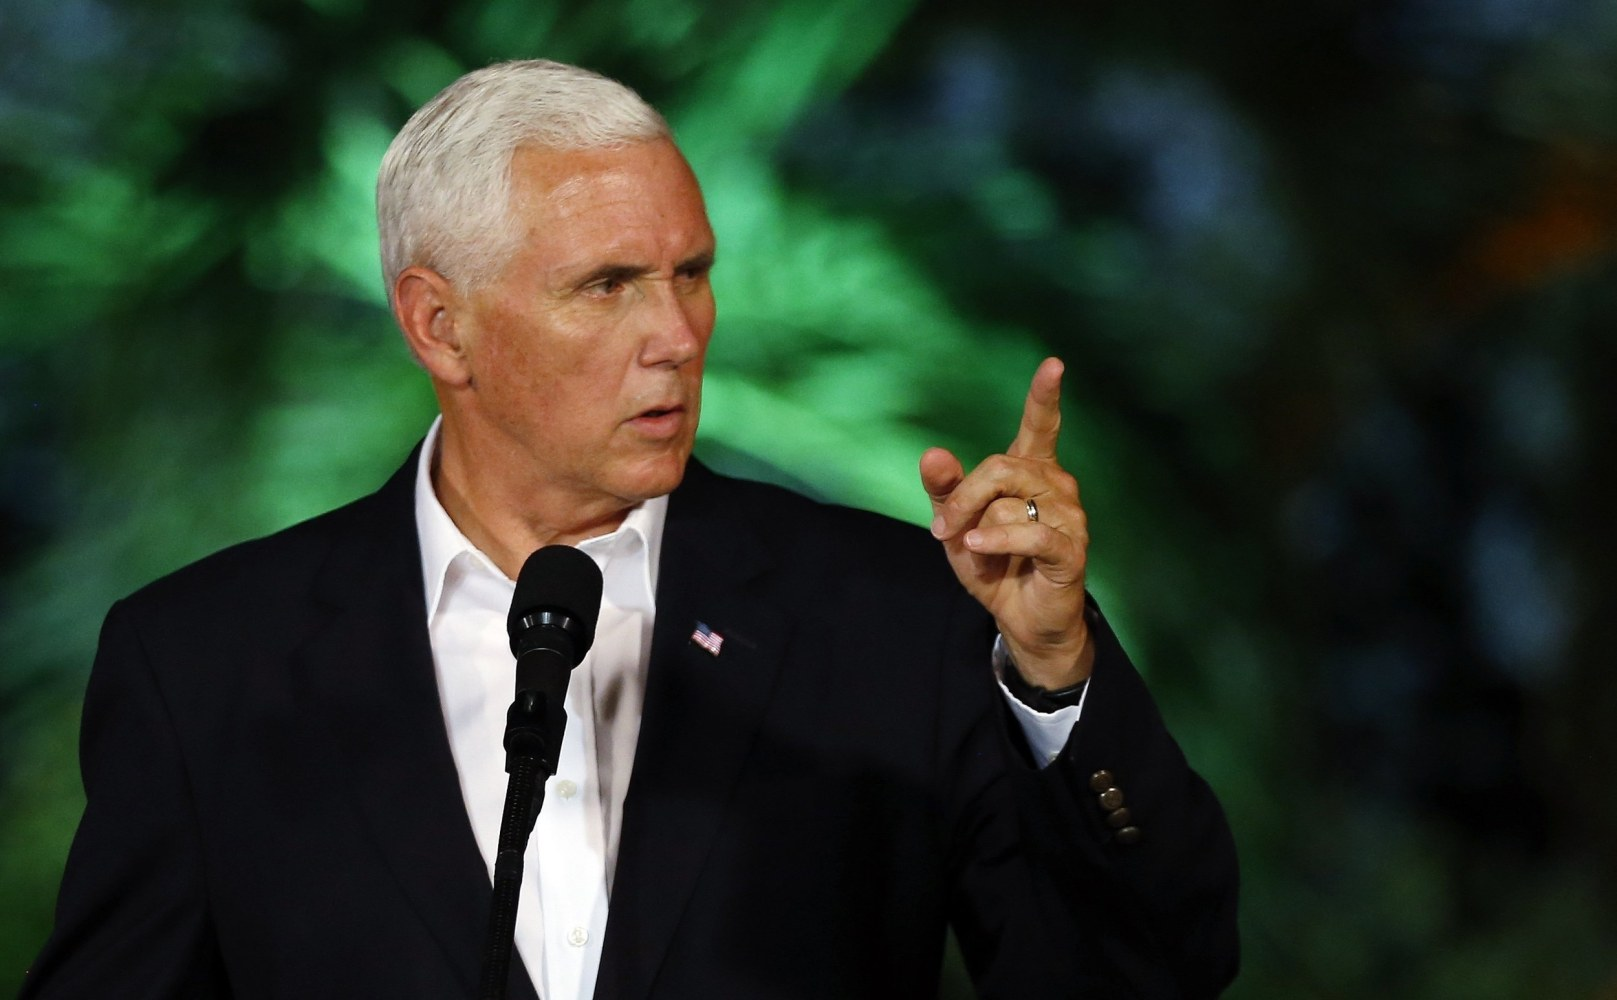 Pence's Army detail booted after bringing women to hotel